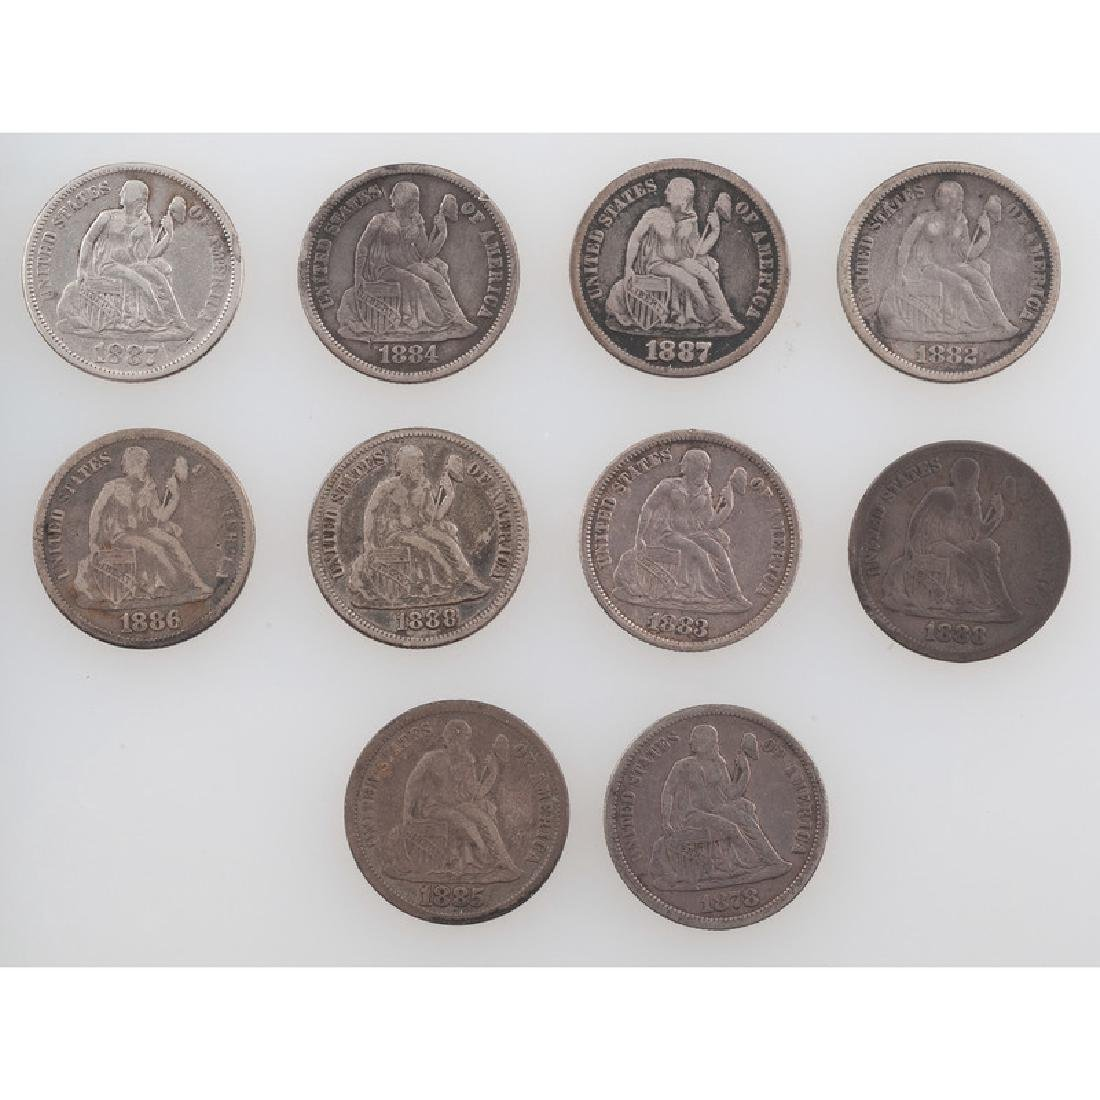 United States Liberty Seated Dimes 1878-1888